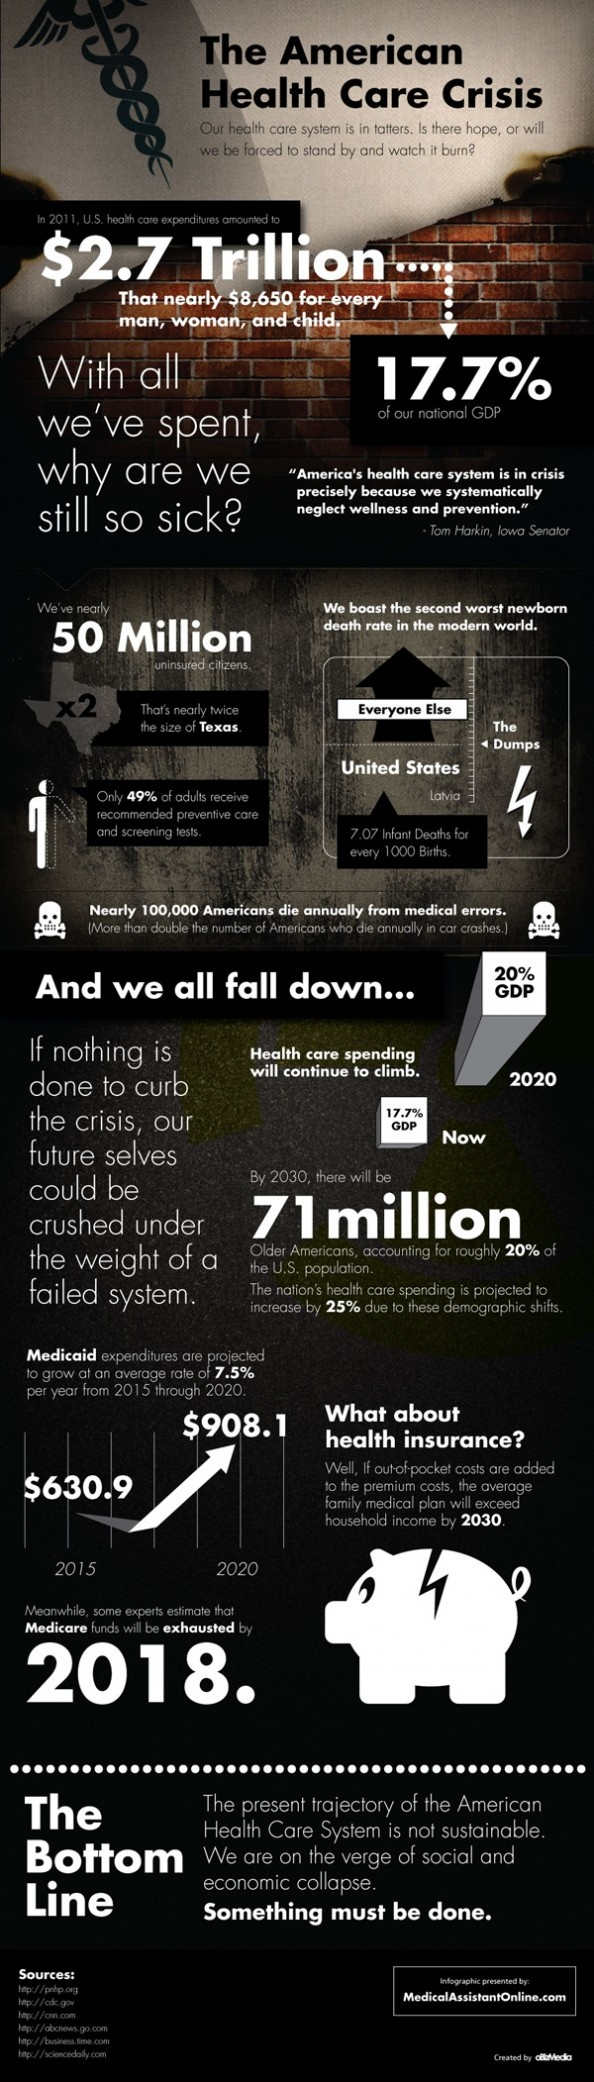 US Healthcare Crisis: In 2011 $2.7 Trillion spending grown exponentially on Healthcare. This is highest compared to any other country. But US Healthcare is not prefect. This rate will make us as country go bankrupt as there is very little left in budget for other things. Get the facts. #OpenOurMind